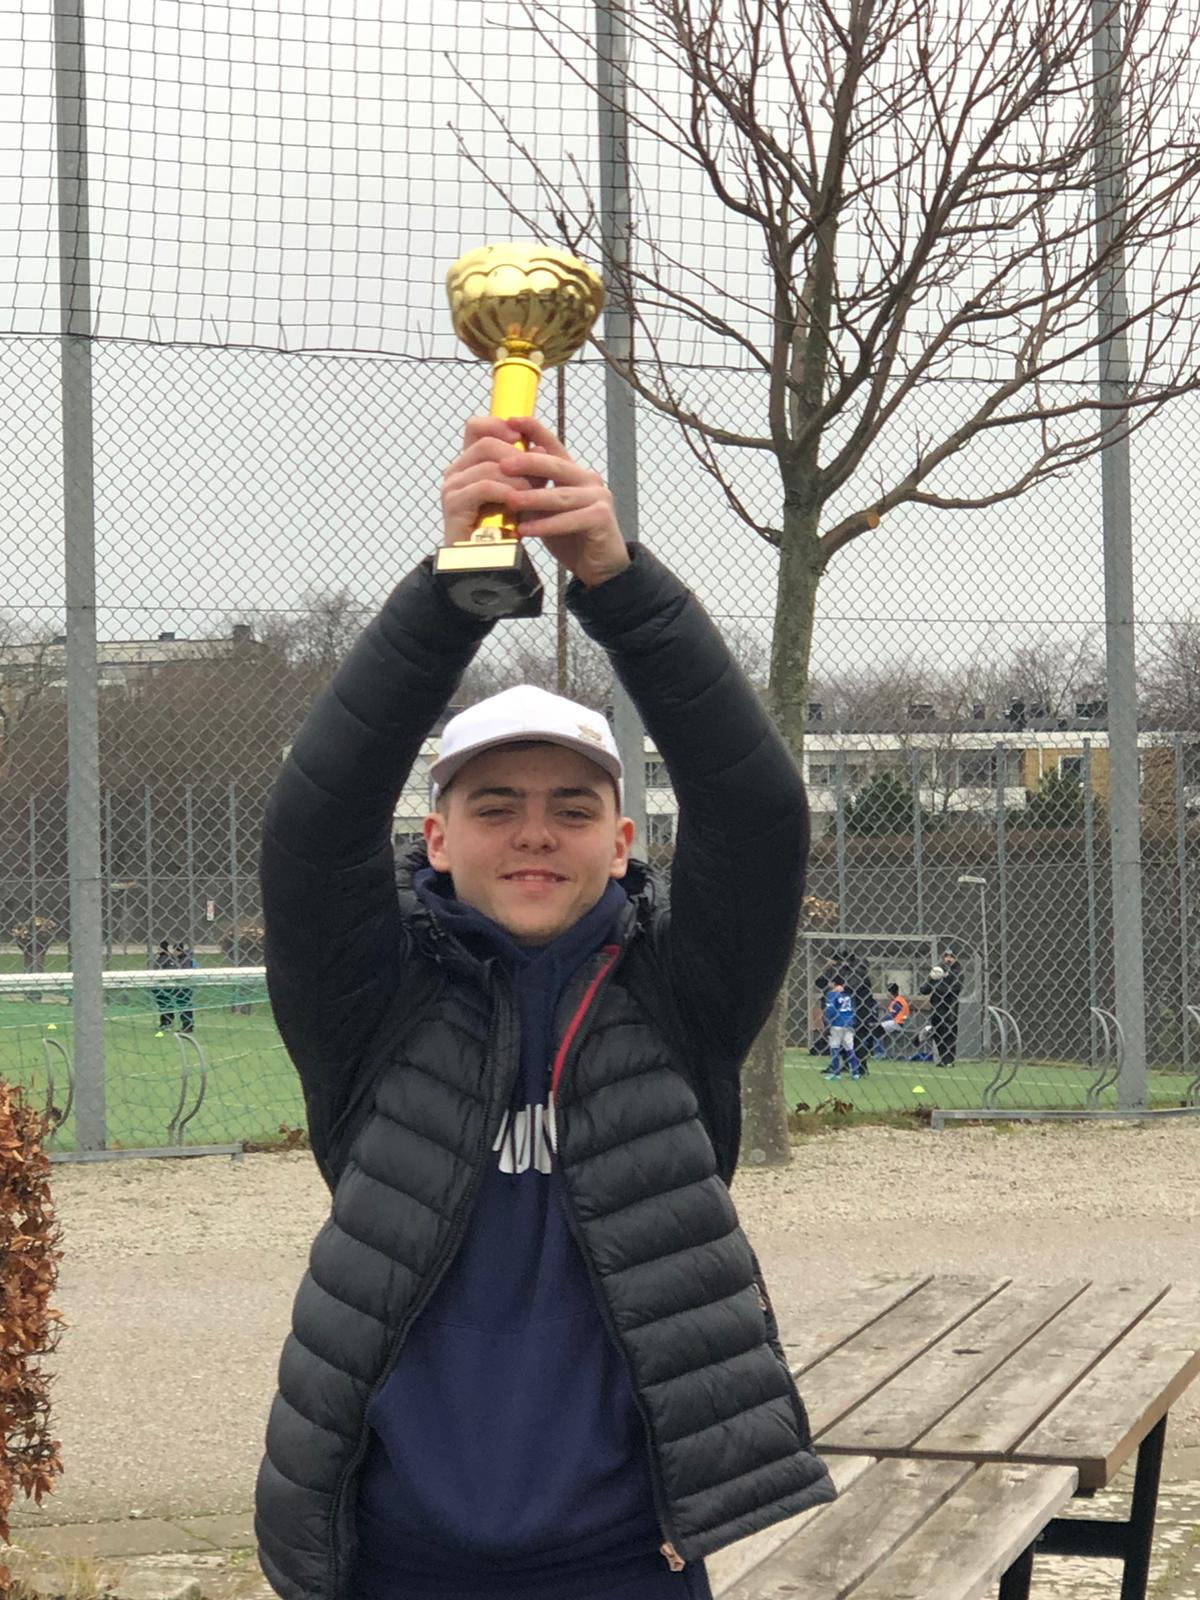 Jack Peters championing the Malmo top scorer trophy! Big cheese on here.